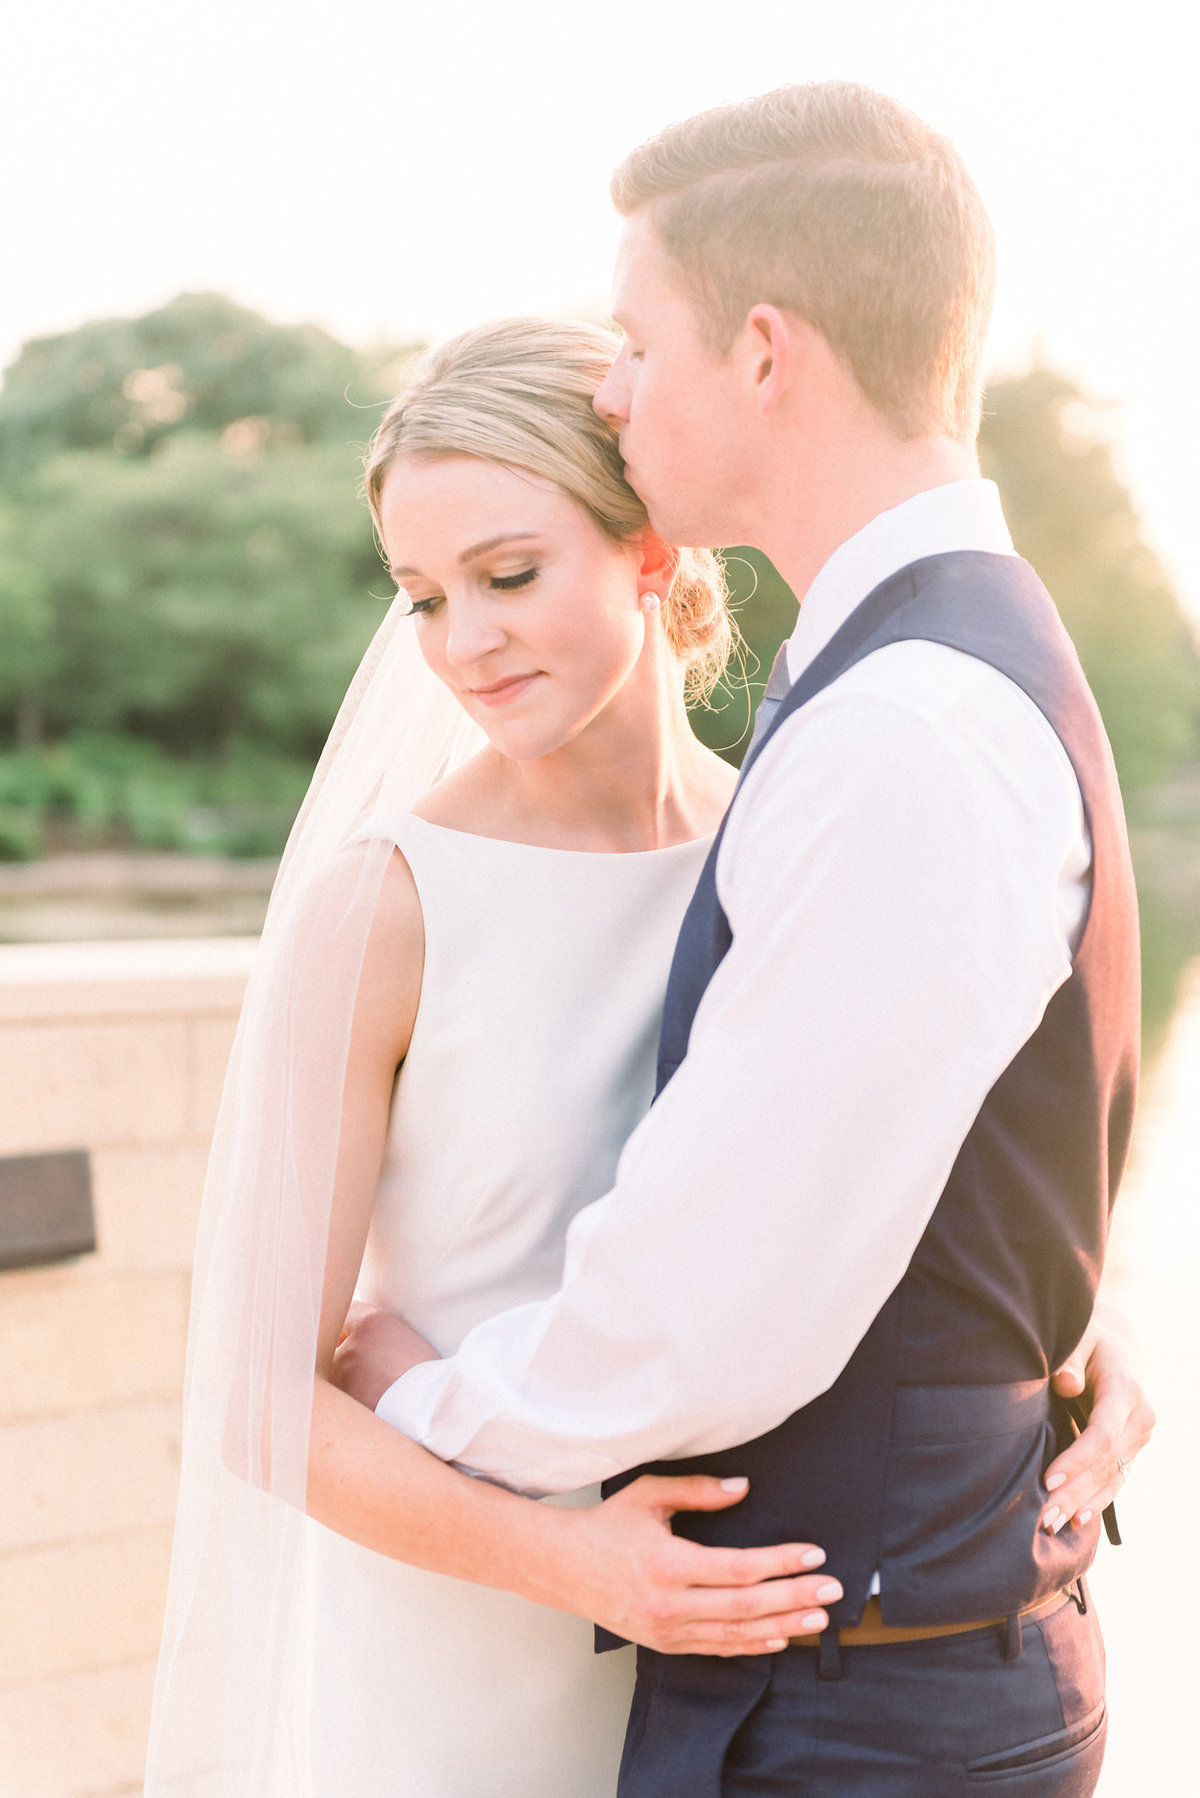 TiffaneyChildsPhotography-ChicagoWeddingPhotographer-Micheala+Tommy-ChicagoBotanicGardenWedding-BridalPortraits-123